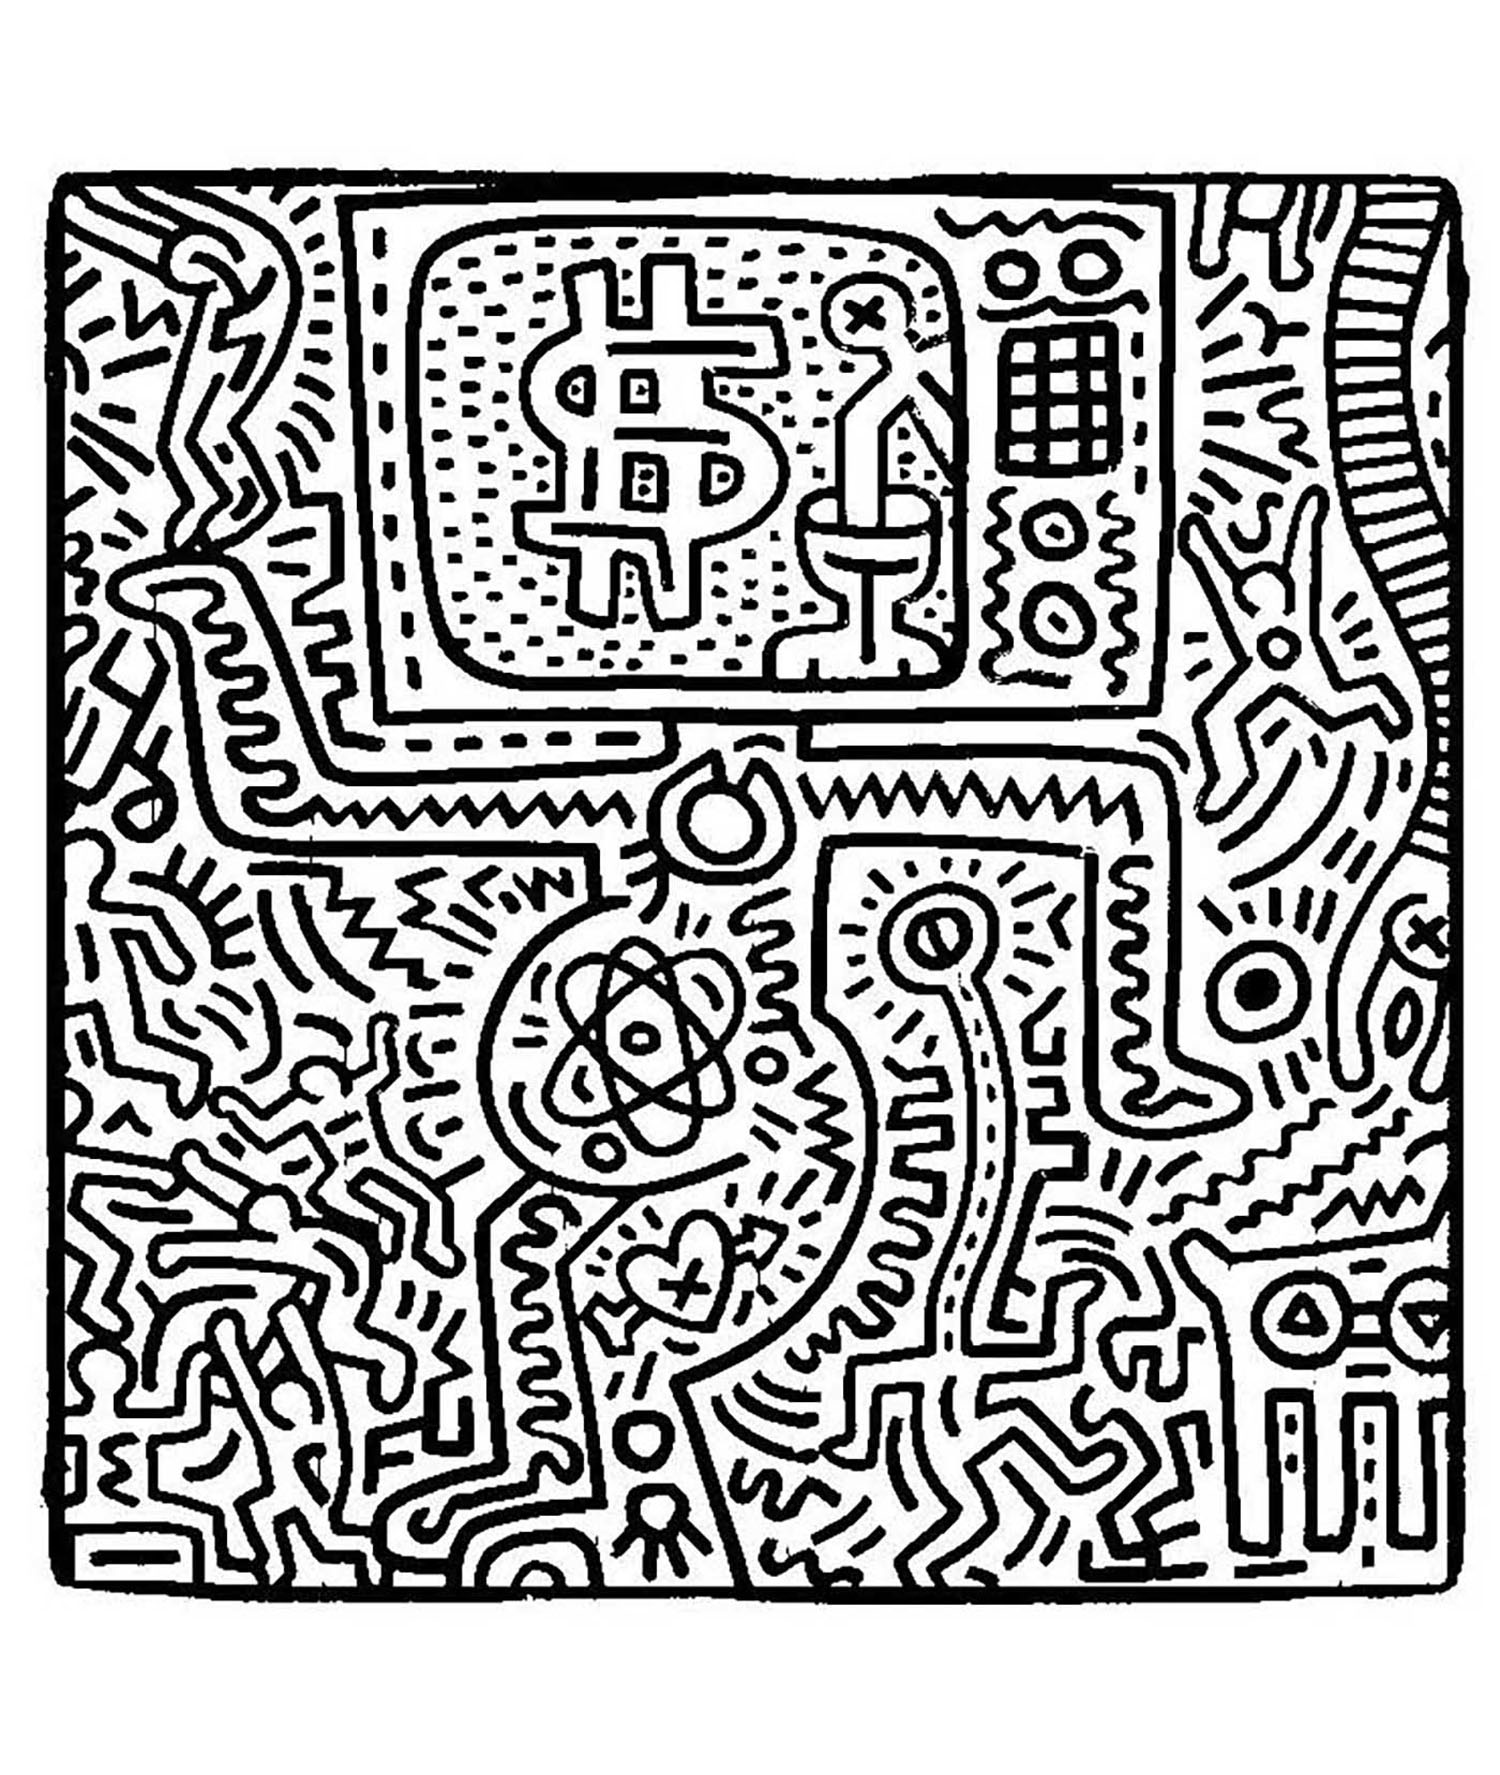 Simple Keith Haring coloring page for children